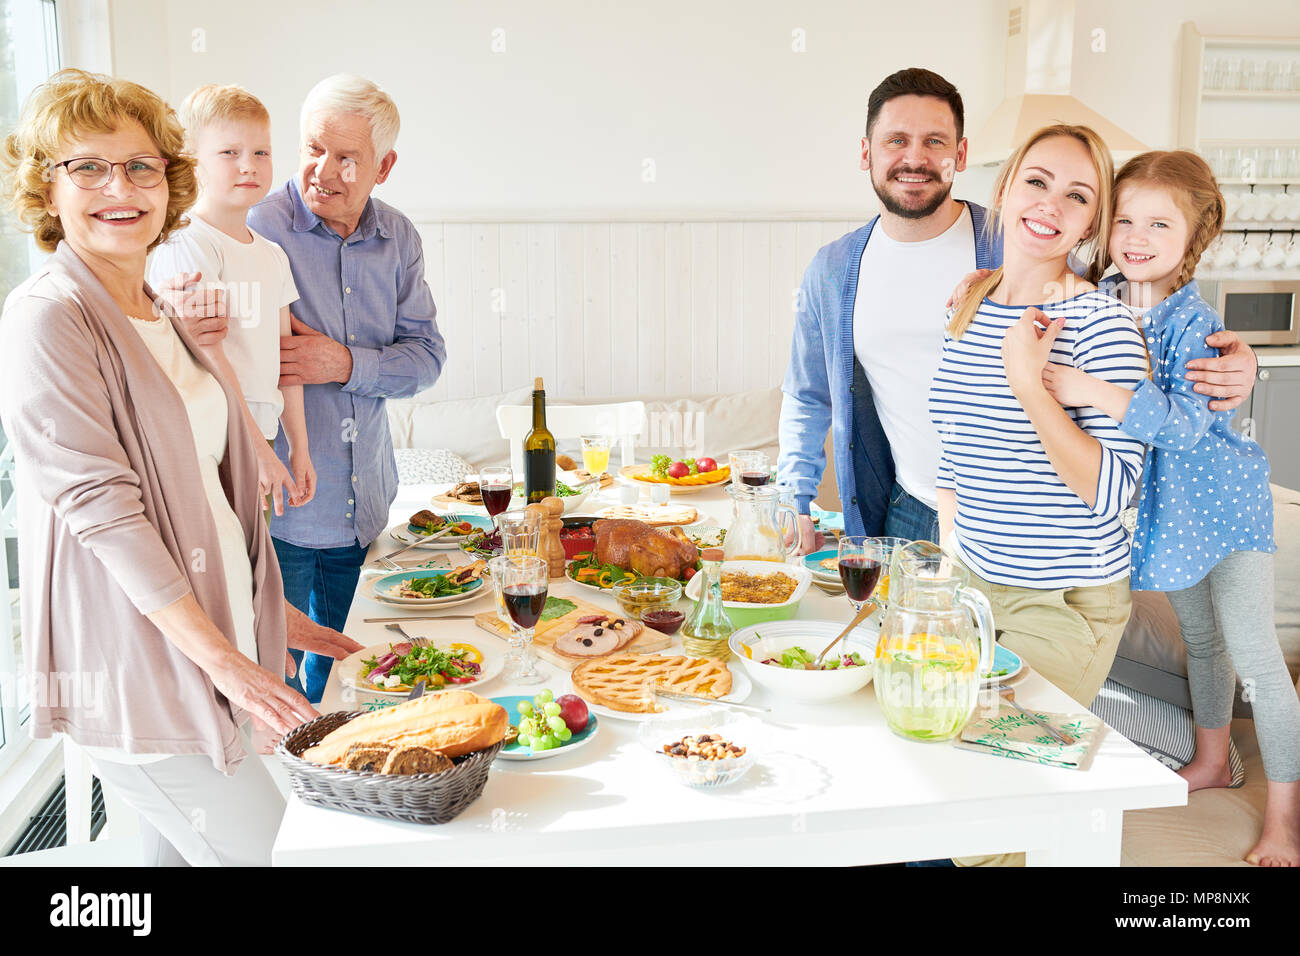 Big Happy family Posing at Dinner Table - Stock Image